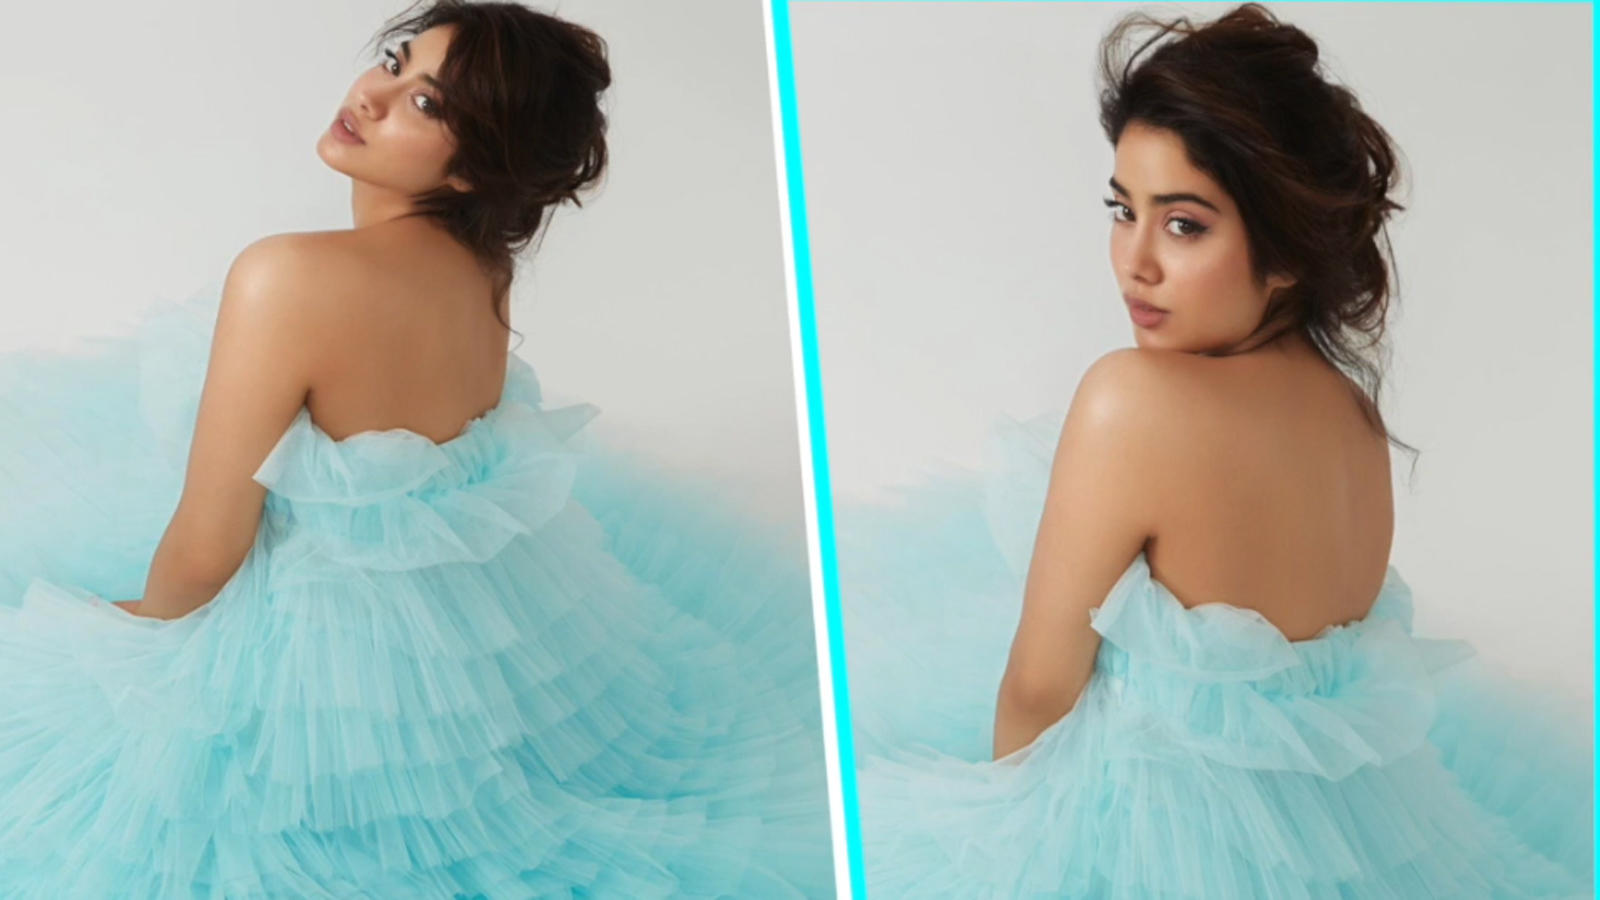 janhvi-kapoor-looks-dreamy-in-ruffled-gown-sister-khushi-kapoor-reacts